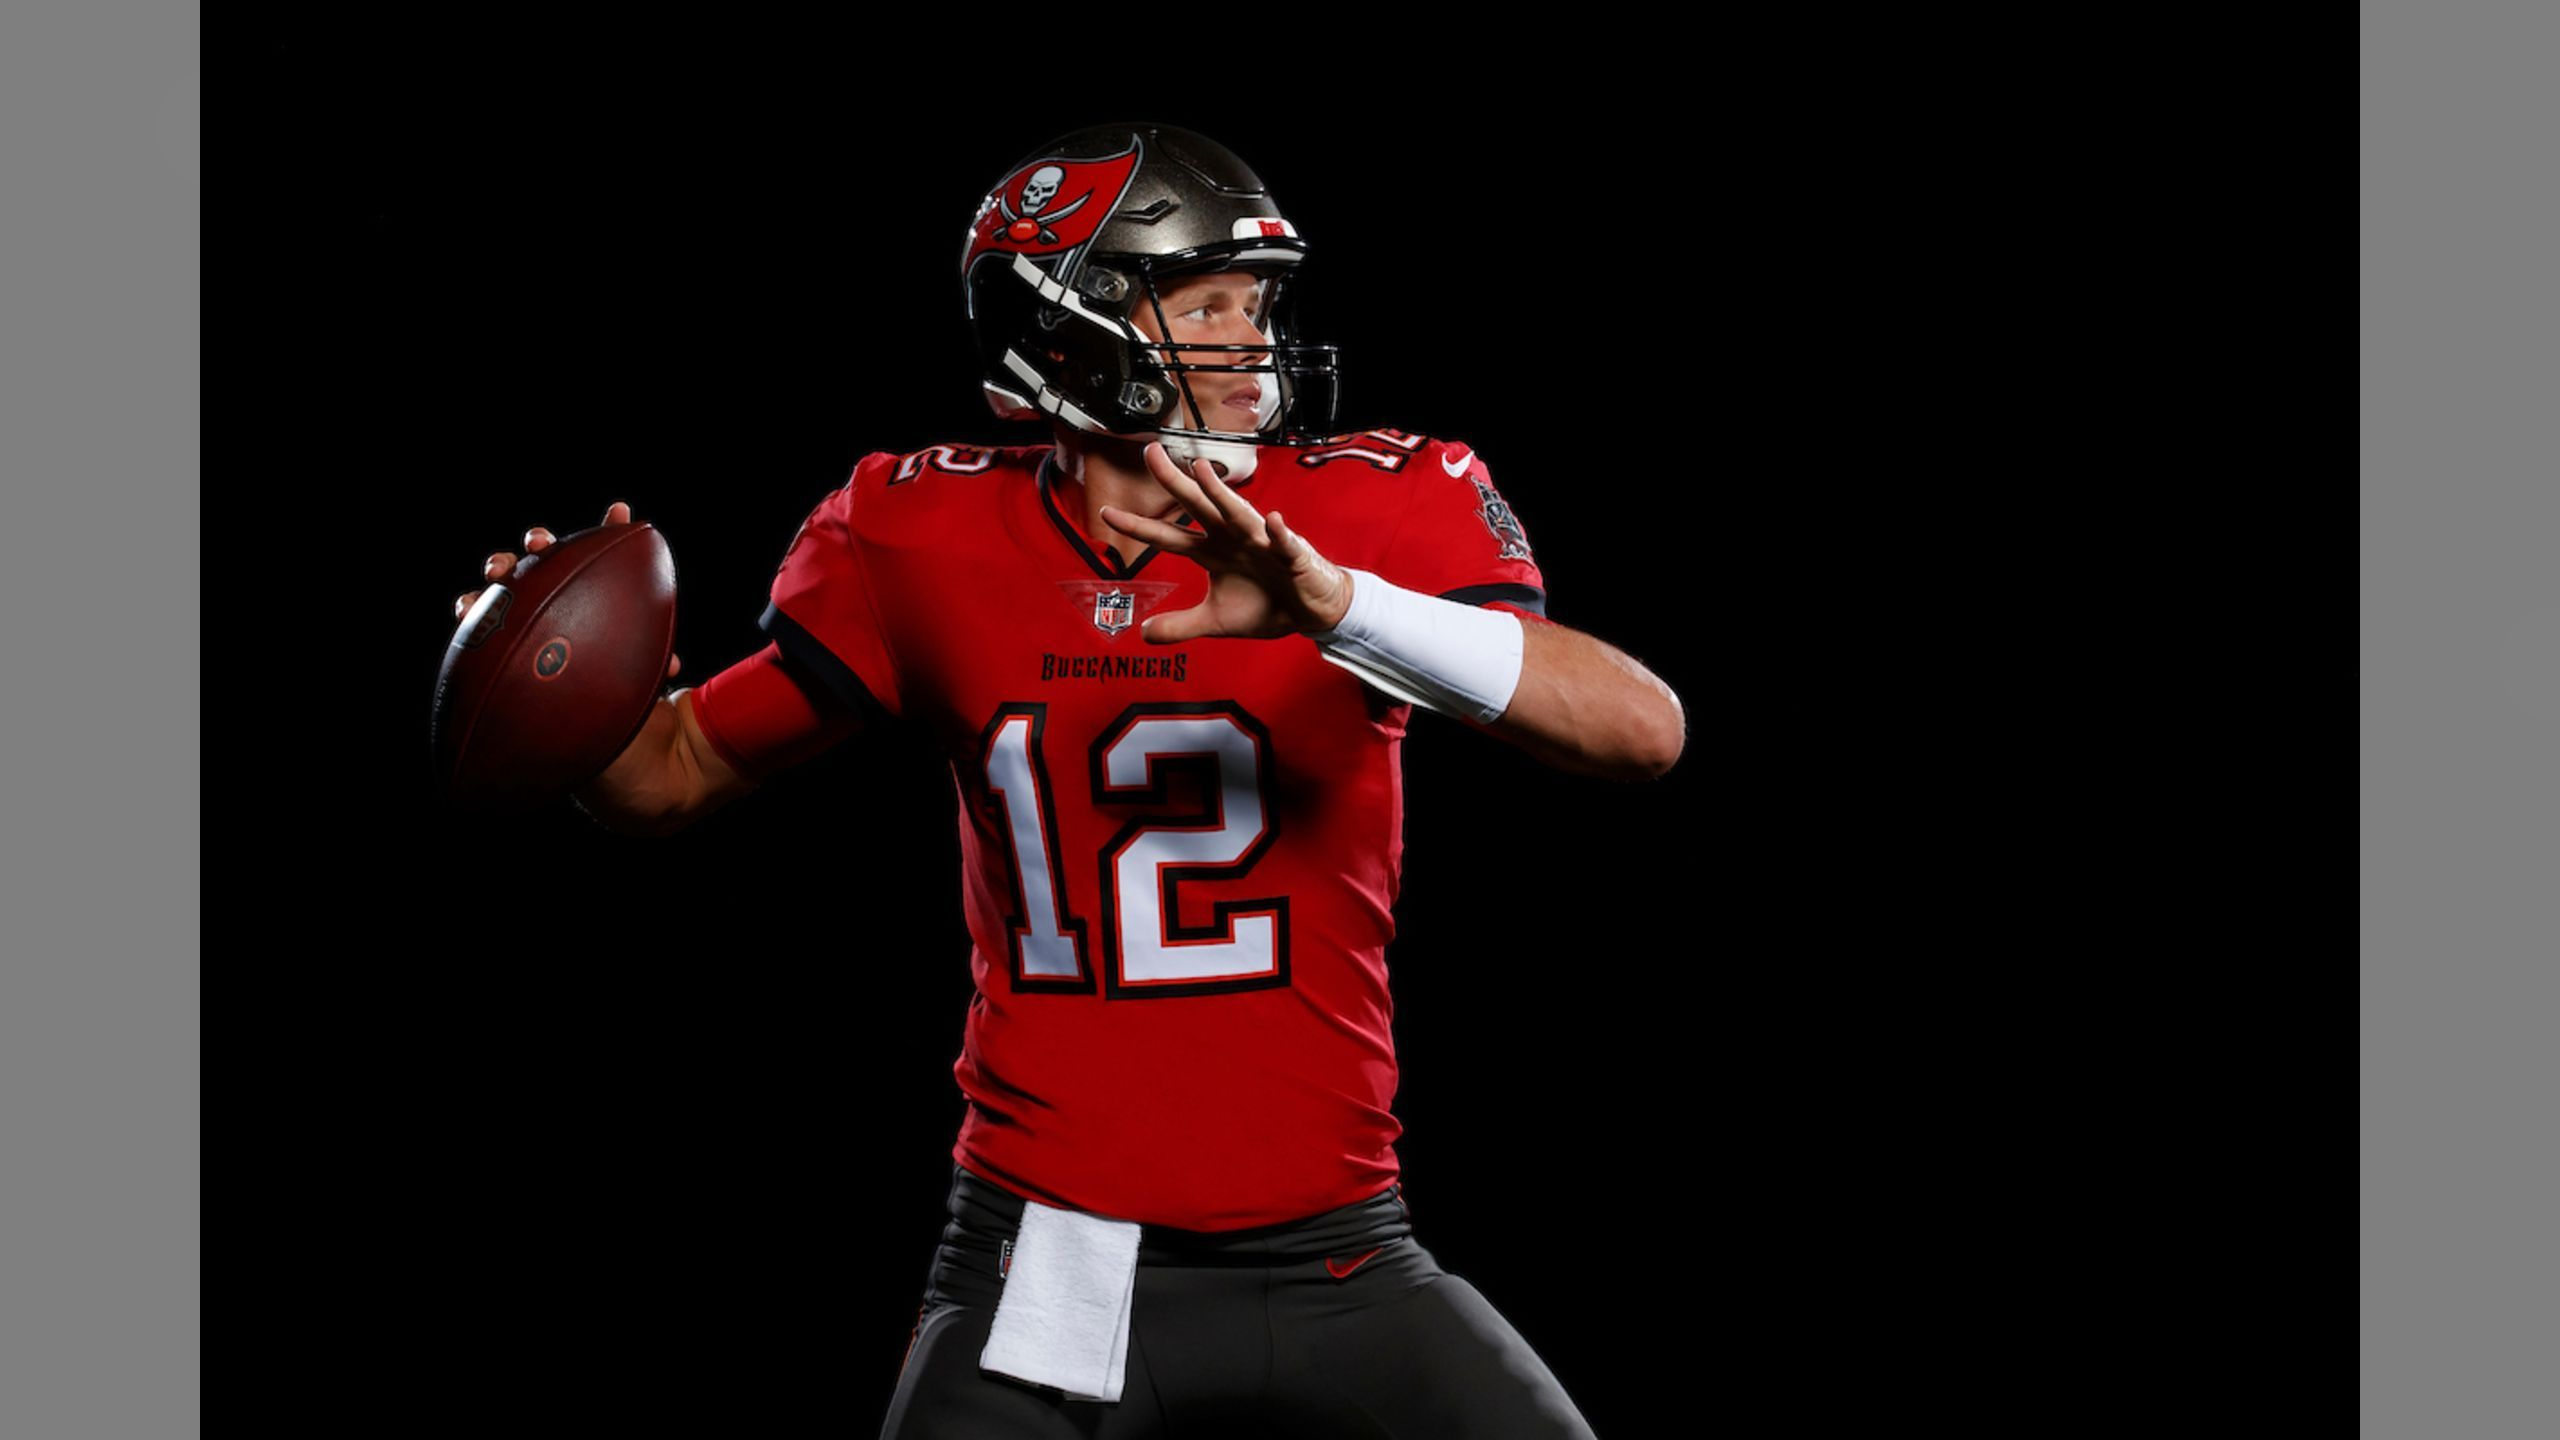 Photos First Look At Tom Brady In A Bucs Uniform In 2020 Tom Brady Tom Brady News Uniform